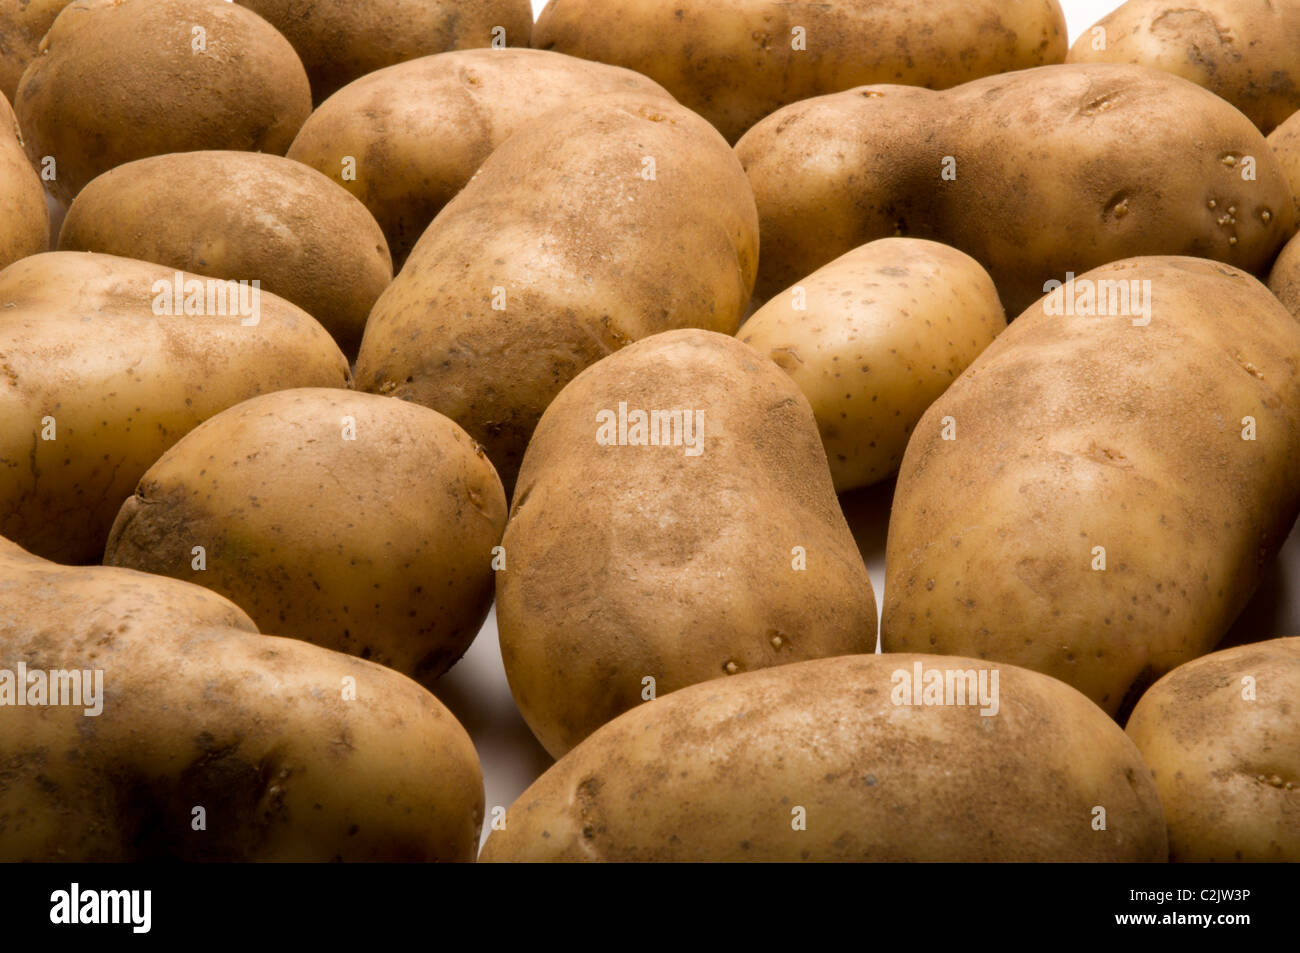 Potato Eyes Stock Photos Potato Eyes Stock Images Alamy